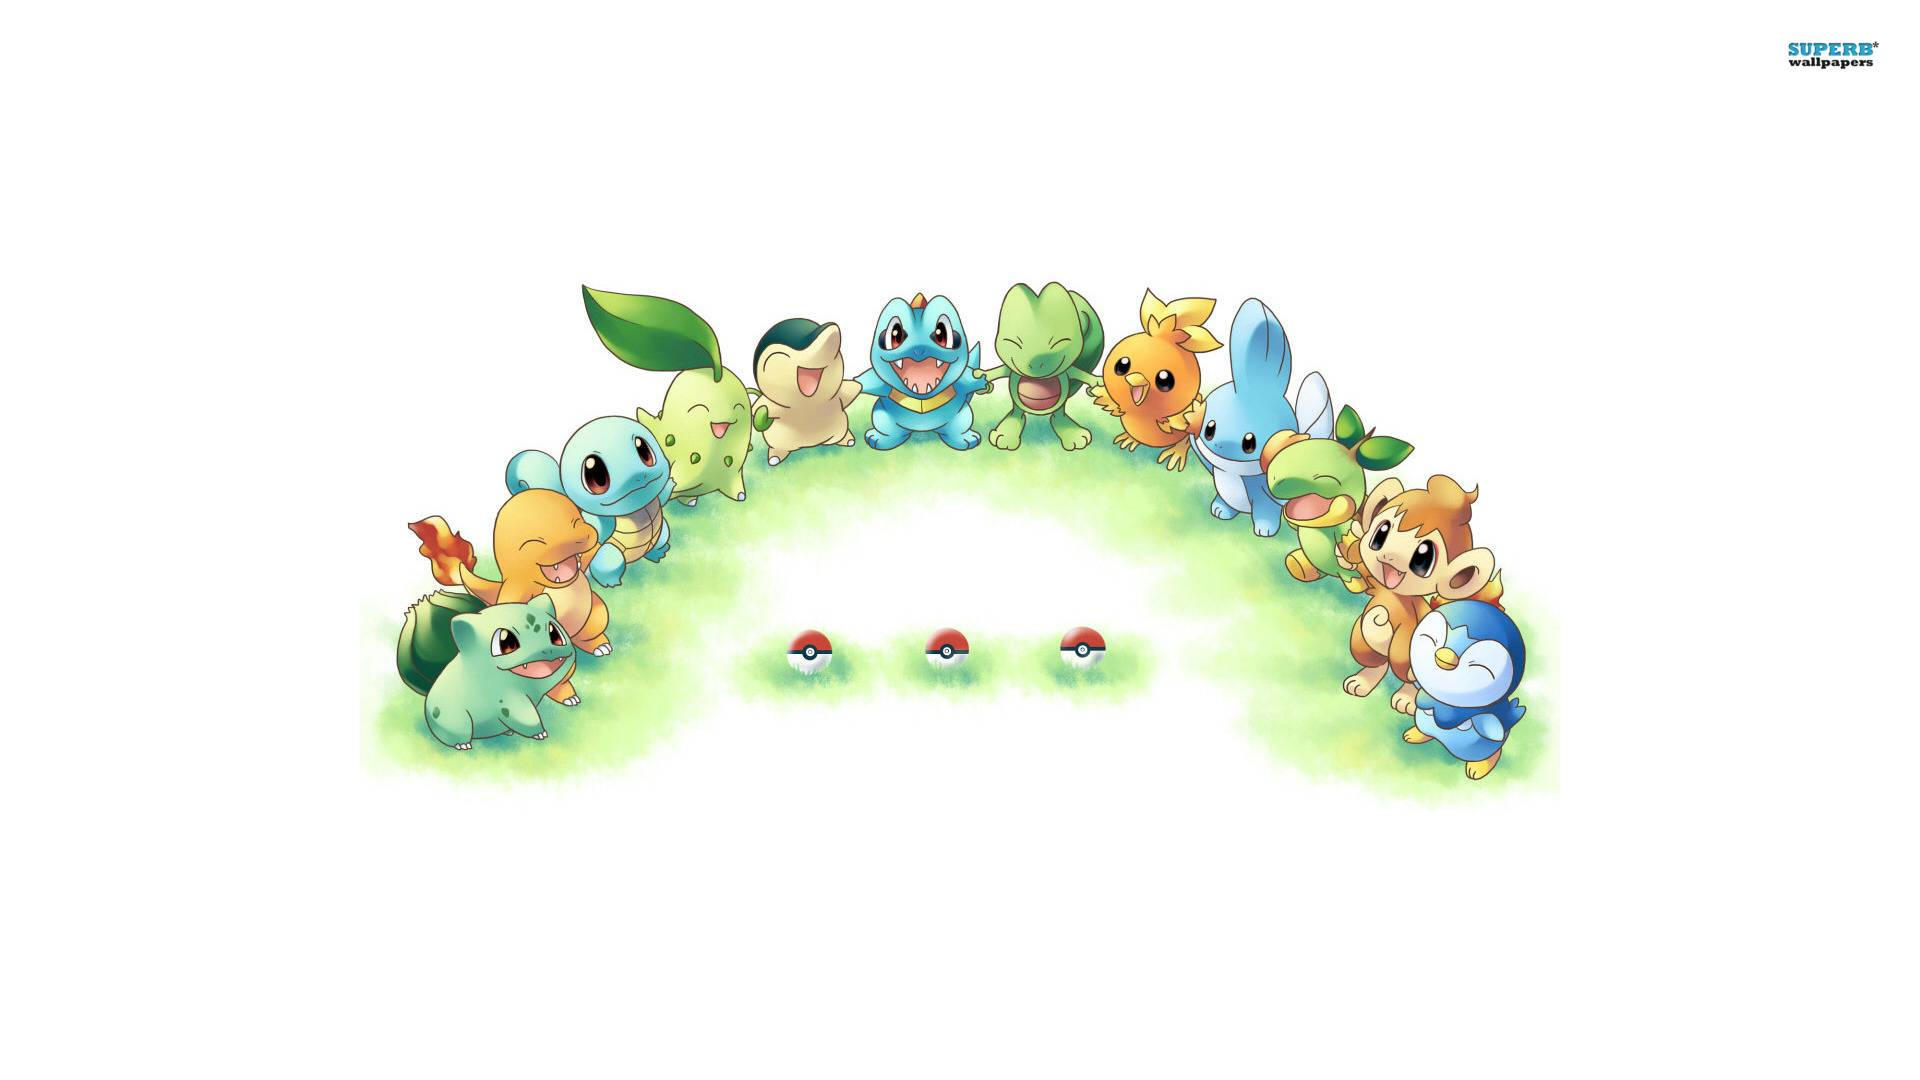 Cute Pokémon Backgrounds - Wallpaper Cave